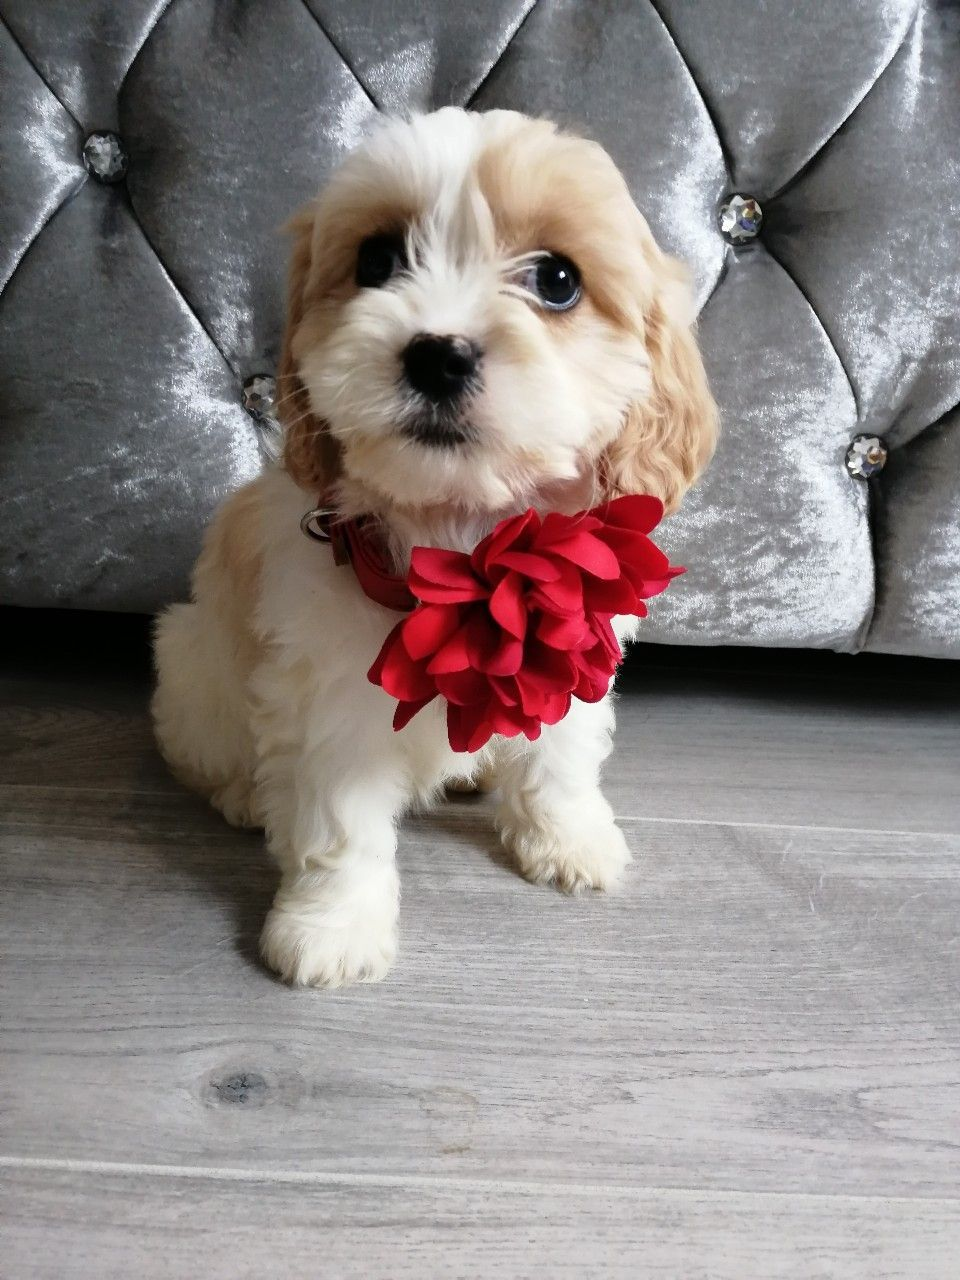 Kuwait Dogs And Puppies Adoption And Sales Email Us At Khaleelsalafi Hotmail Com Stunning Cavachon Puppies Puppies For Sale In Kuwait Cavachon Puppies Ca